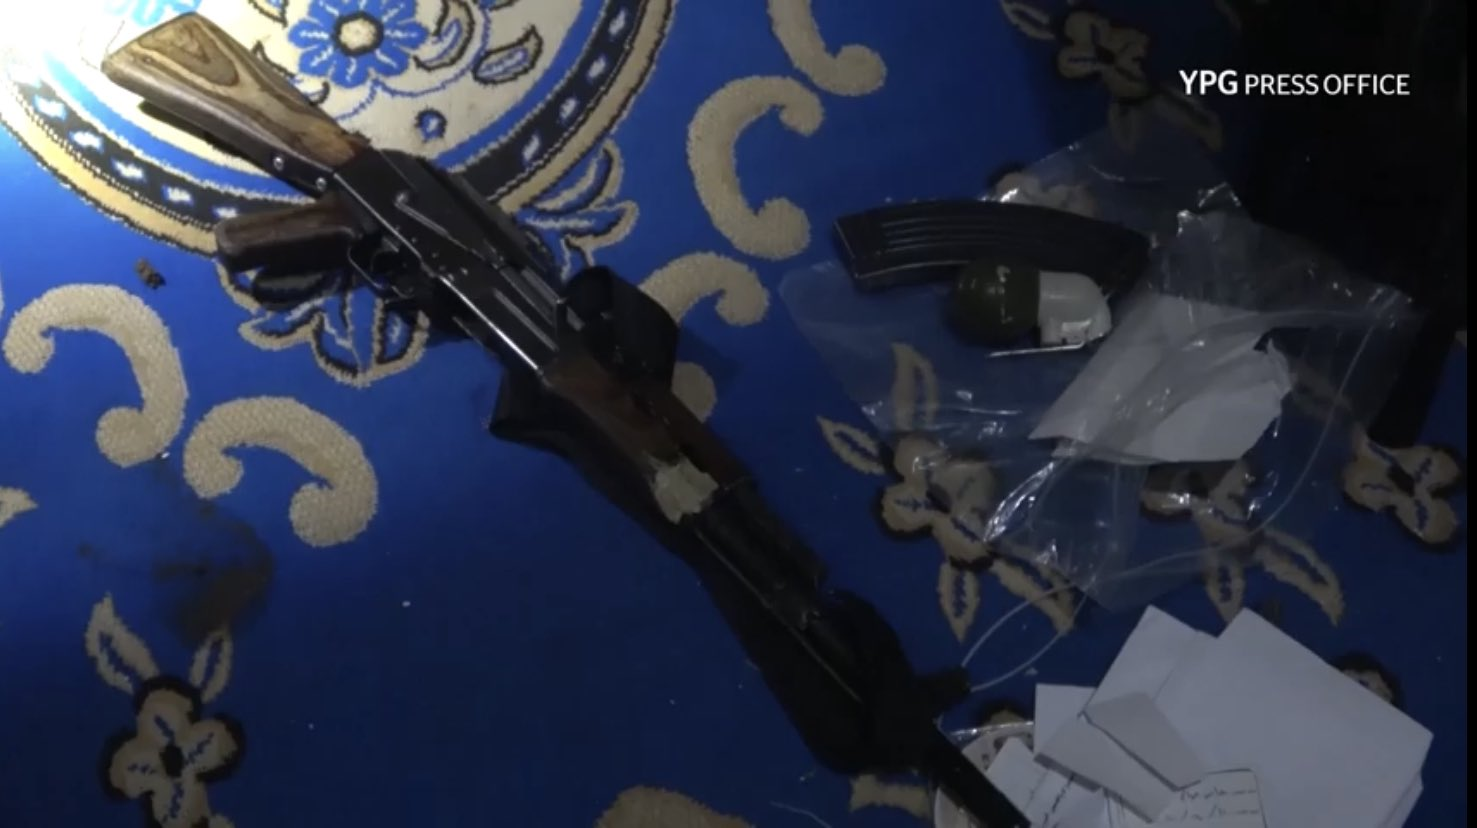 In Video: Successful Operation Of SDF Special Forces Against Pro-Government Agents In Al-Hasakah